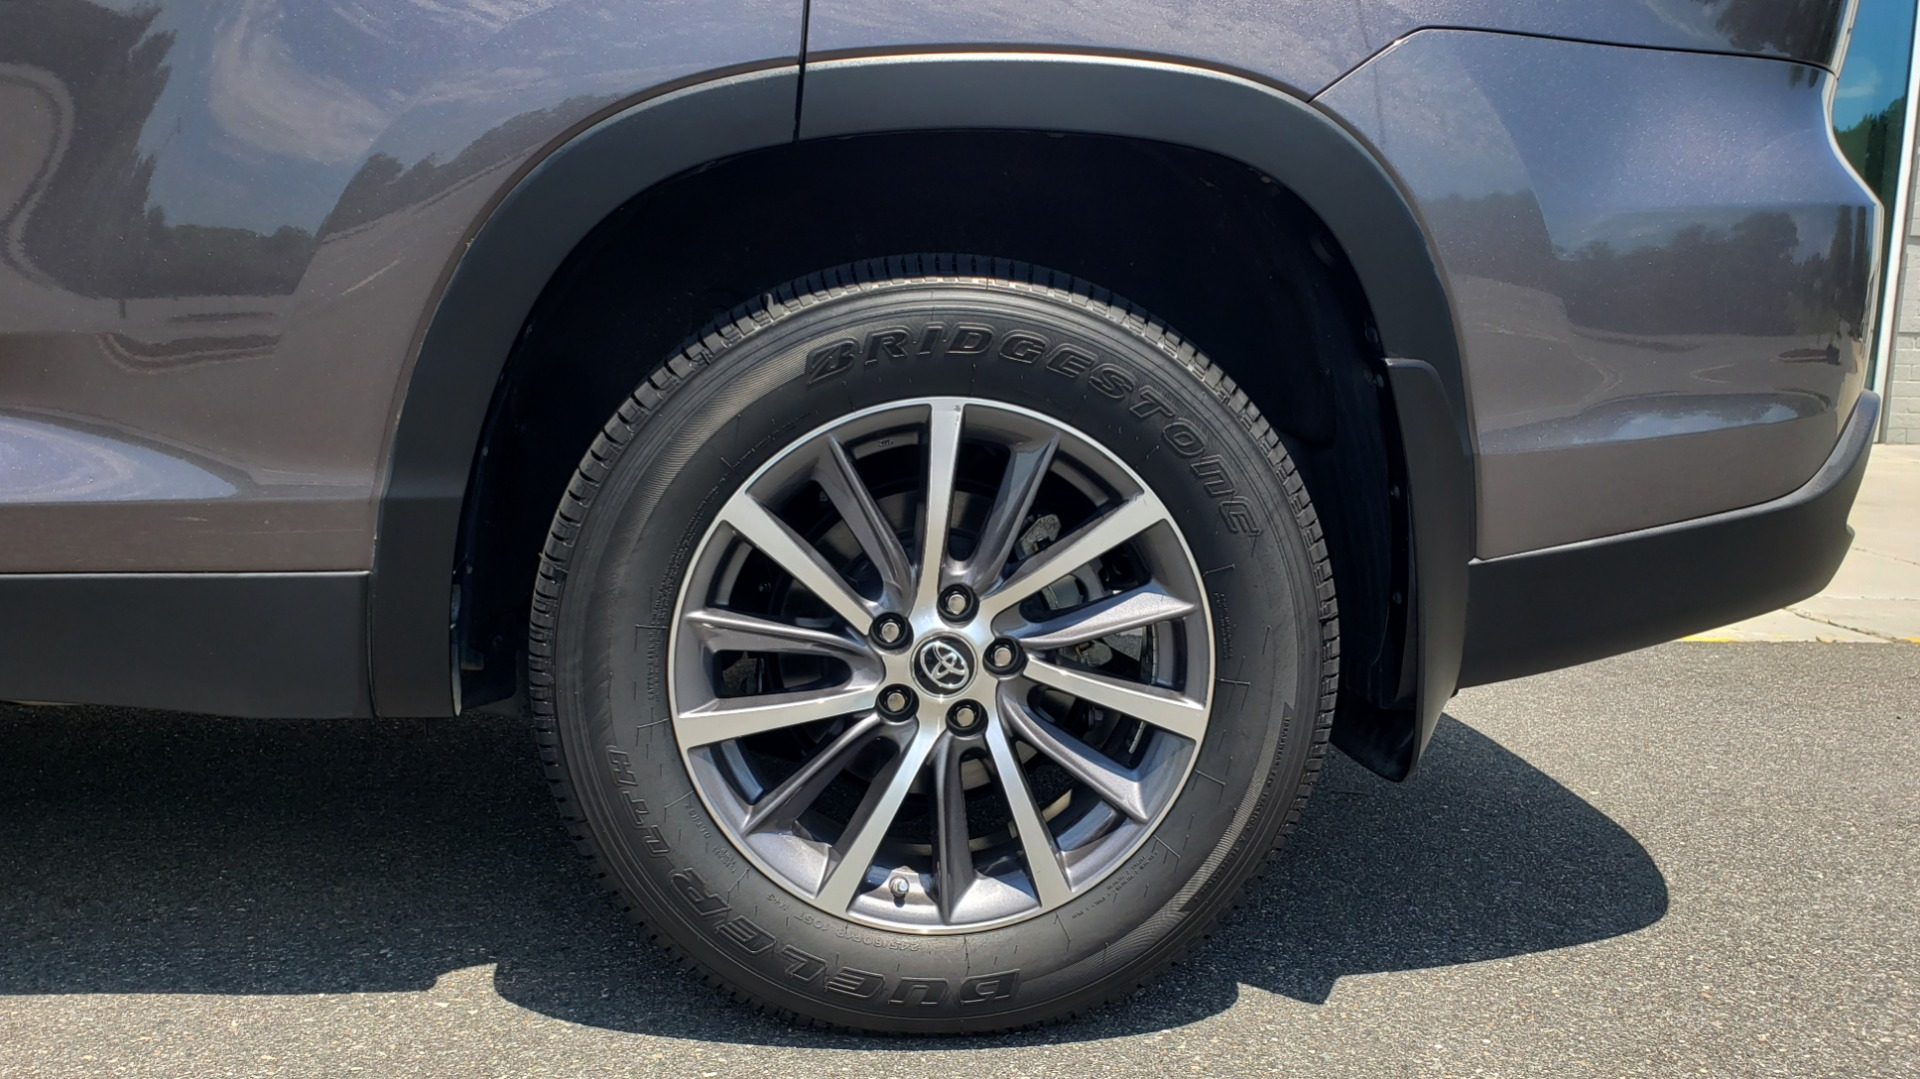 Used 2019 Toyota HIGHLANDER XLE / 3.5L V6 / AWD / LEATHER / 8-SPD AUTO / 1-OWNER for sale $37,500 at Formula Imports in Charlotte NC 28227 81